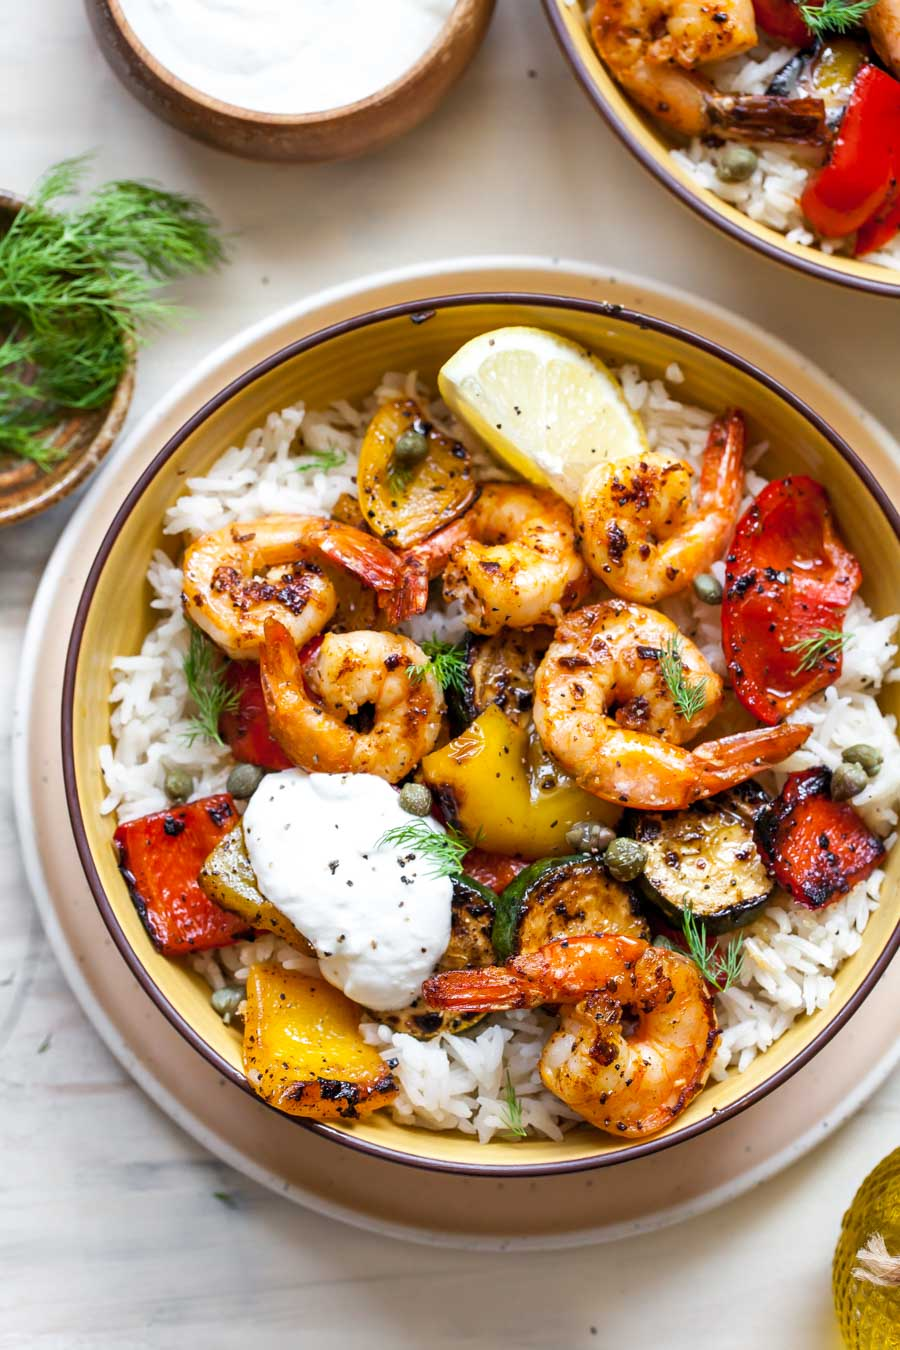 Shrimp and vegetables with rice on a plate